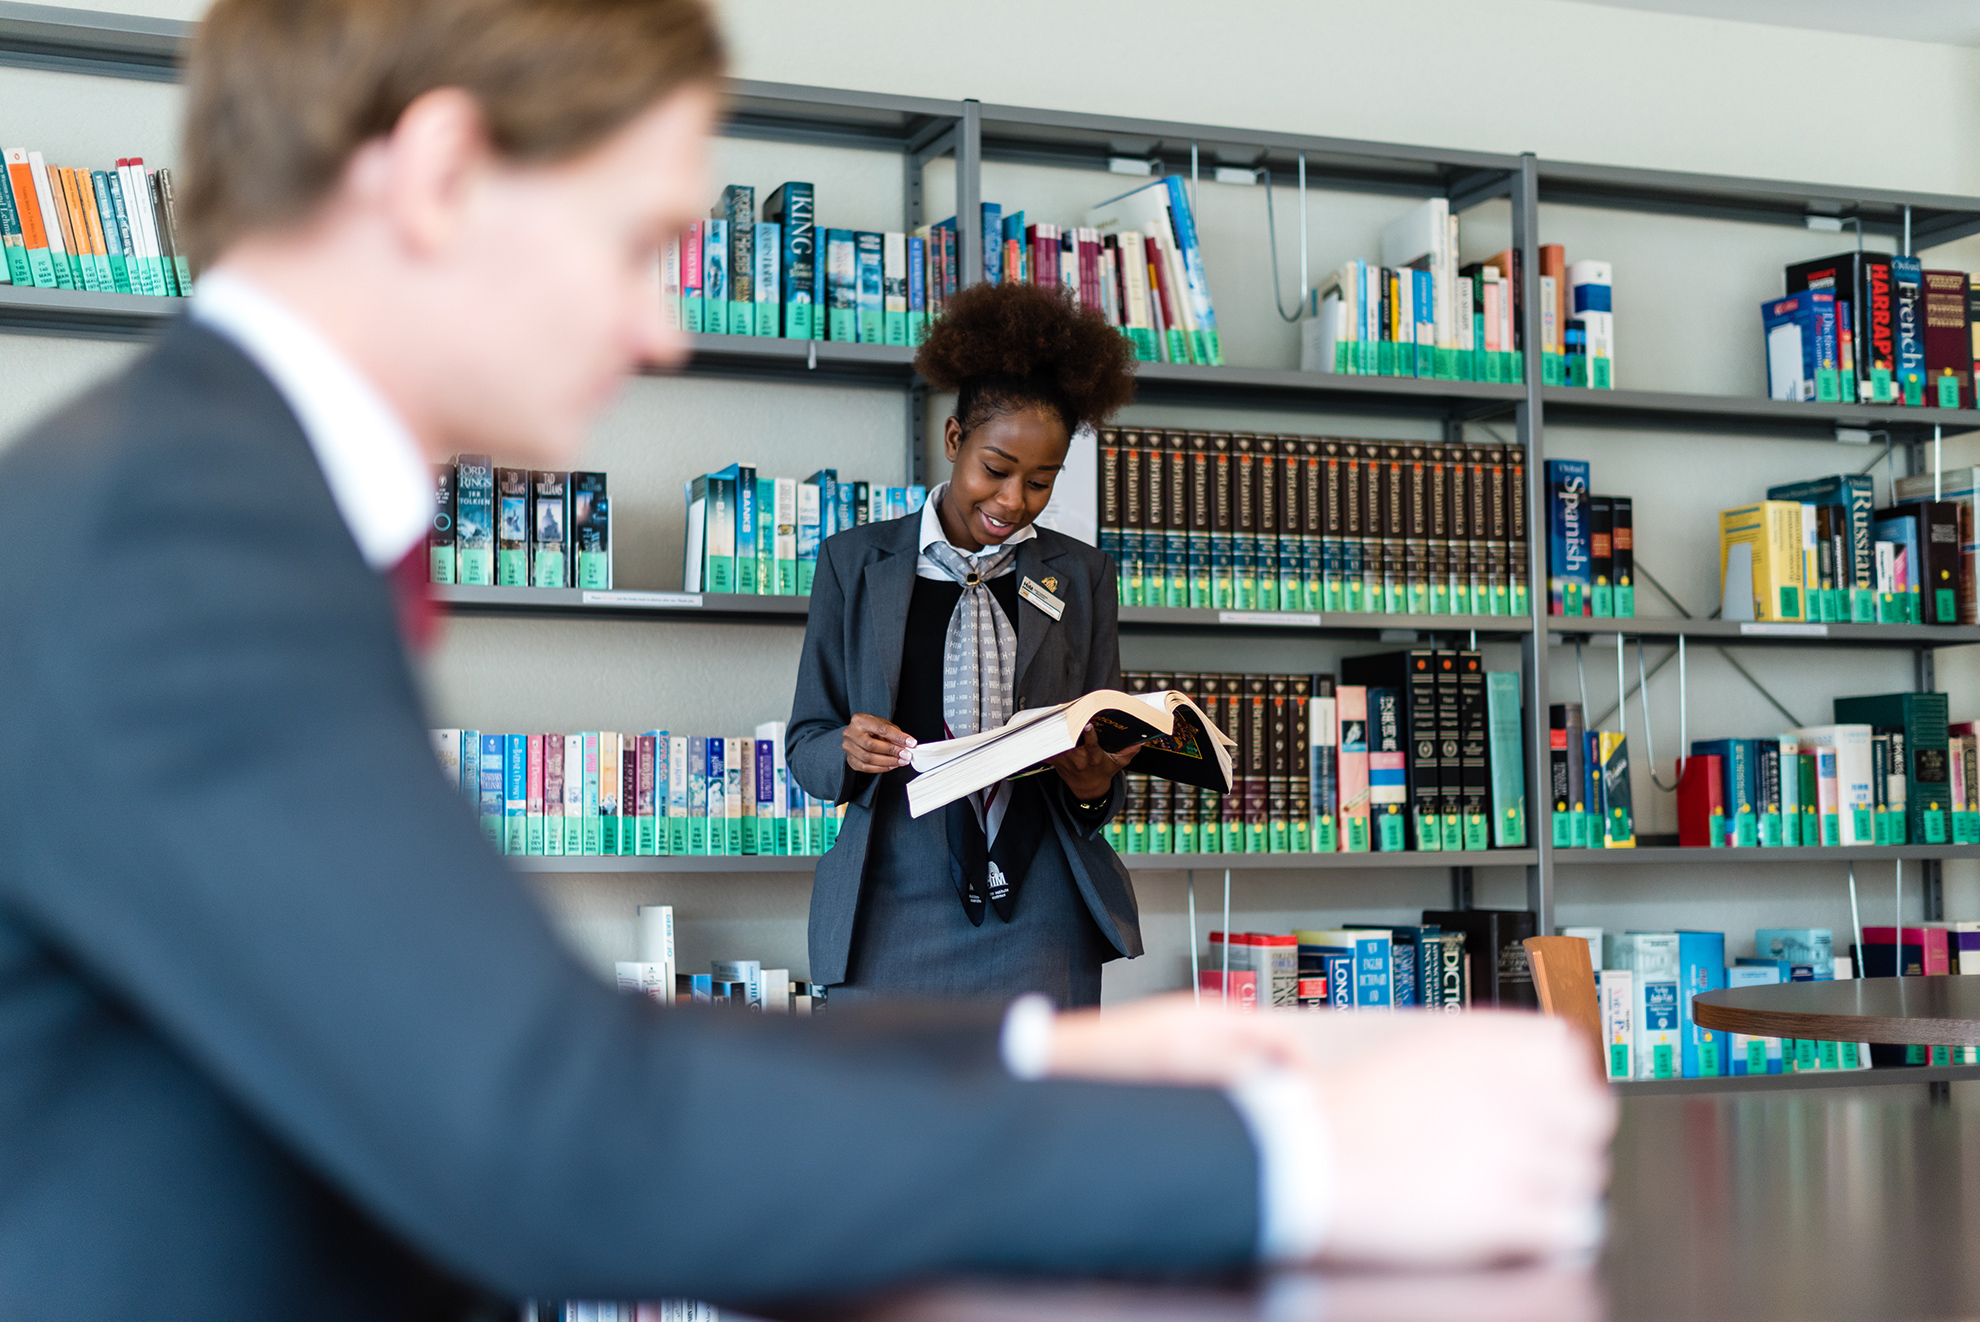 Hospitality management school students working together in library